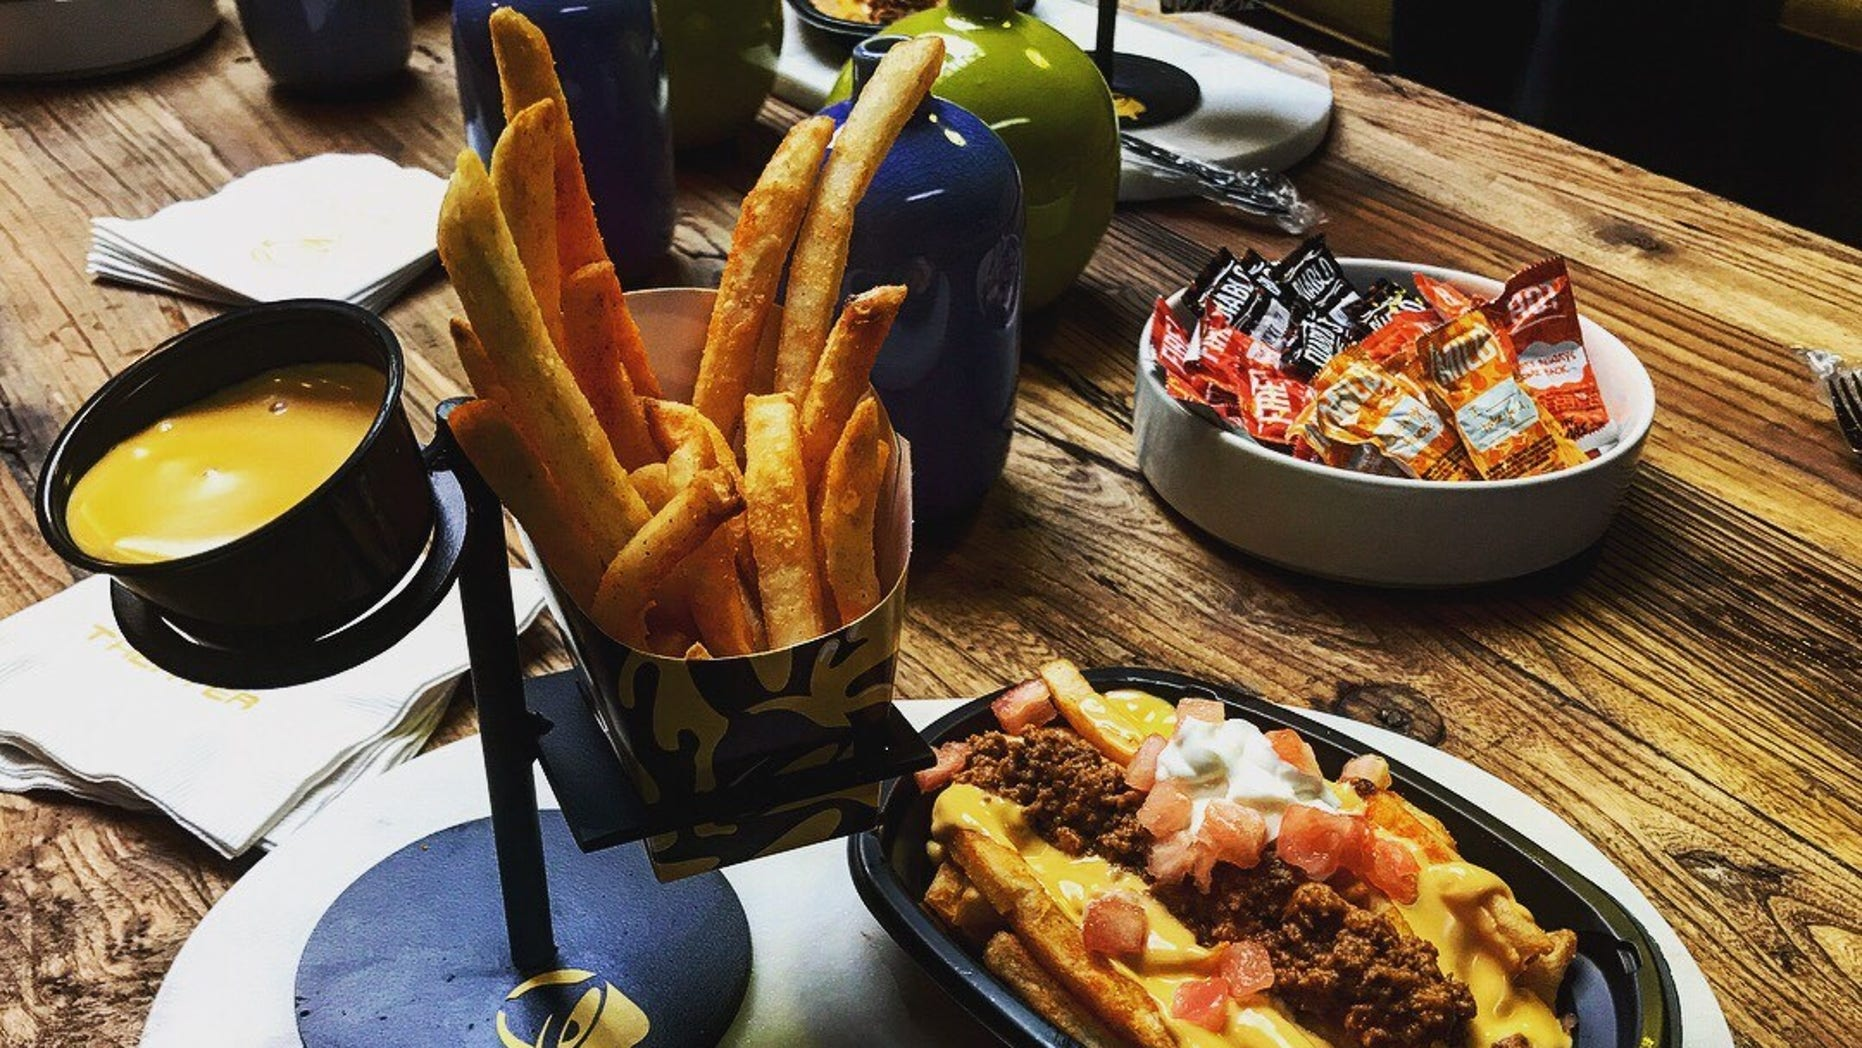 Taco Bell debuts its new $1 Nacho Fries for a limited time nationwide.